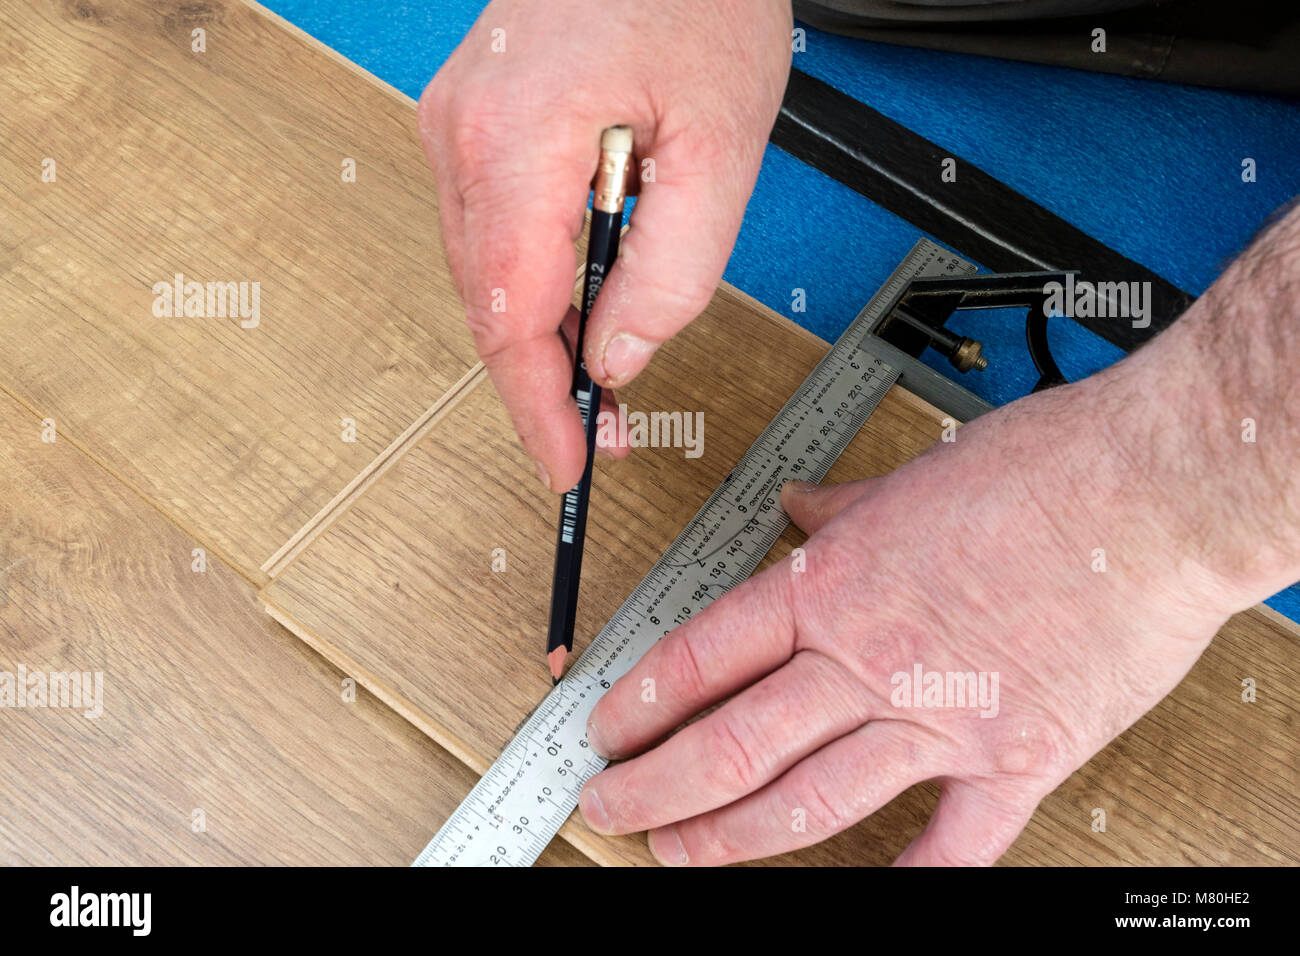 A Person Marking Out a Laminated Floor Board Ready for Cutting Using a Combination Set Square, UK. - Stock Image